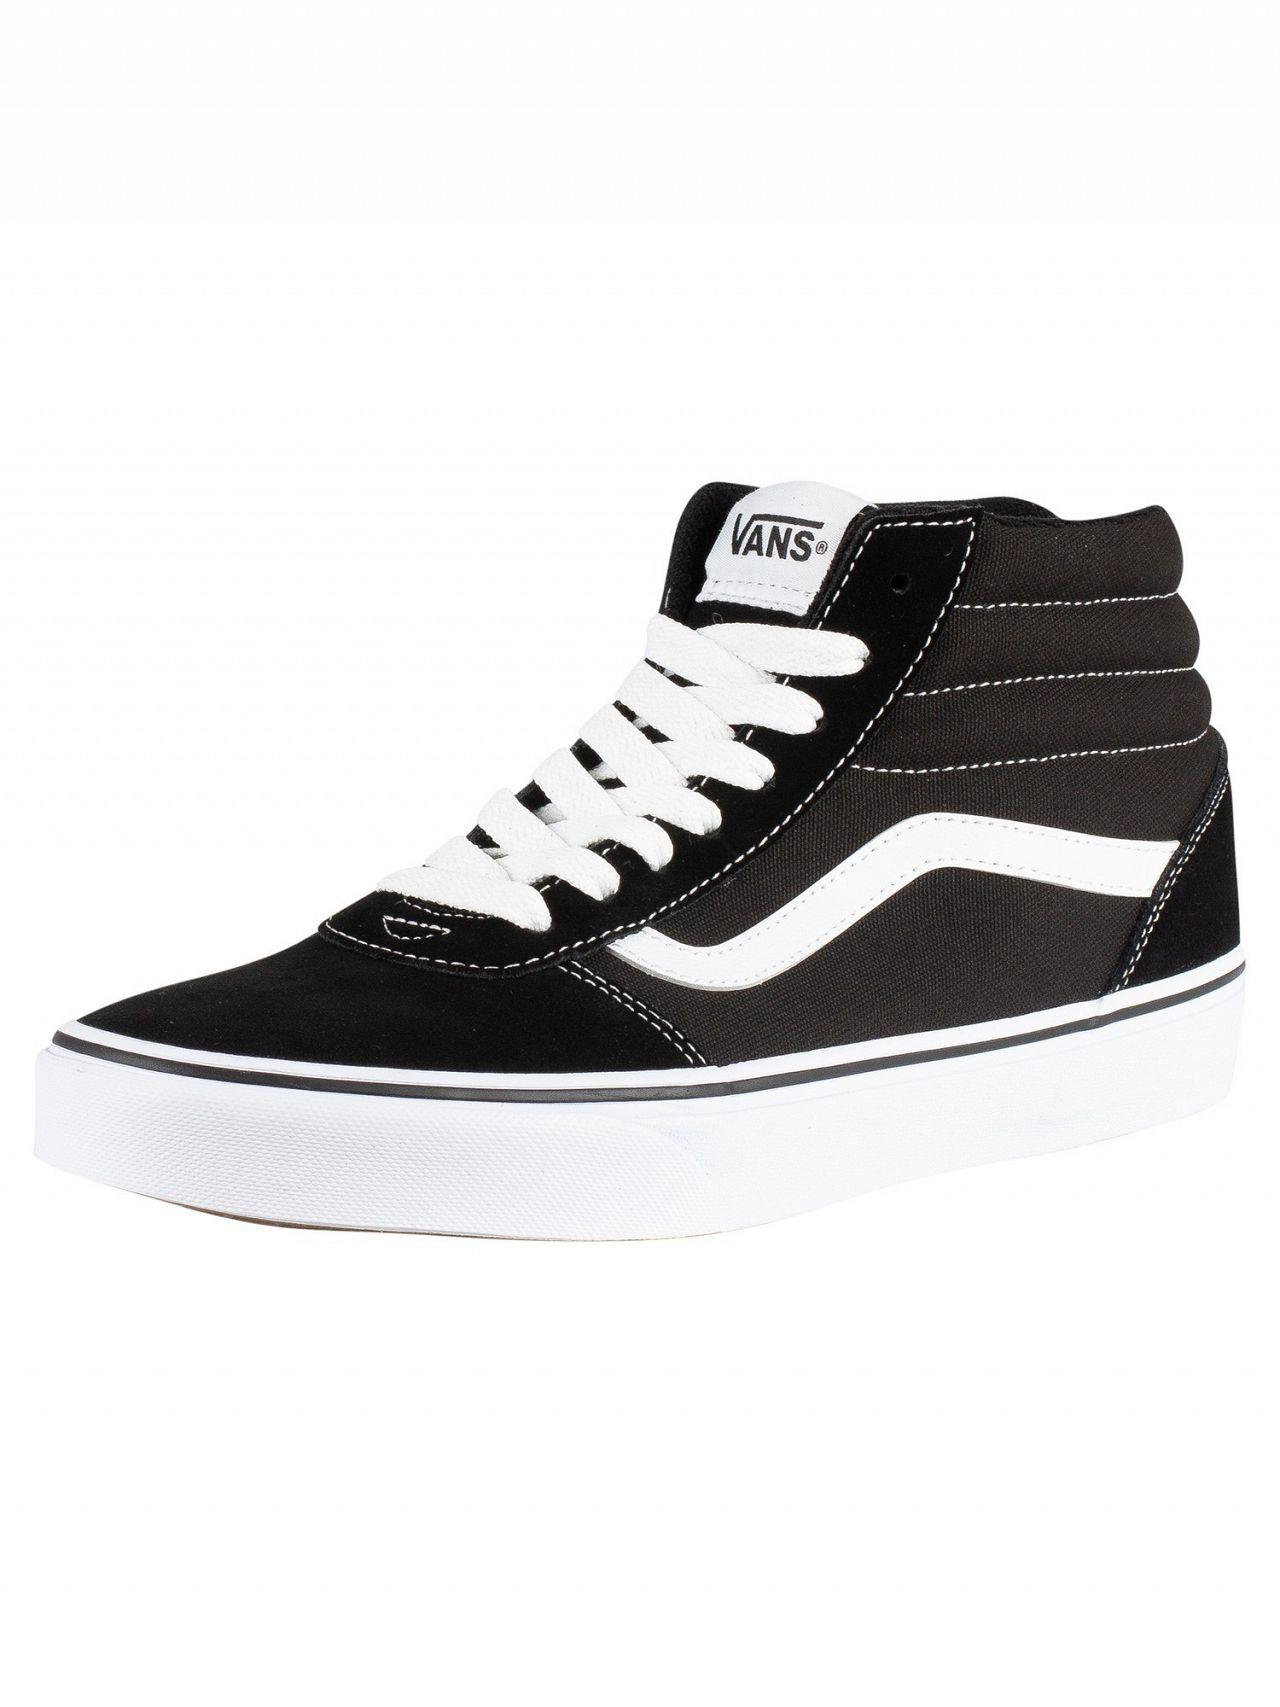 Lyst - Vans Black white Ward Hi Suede Canvas Trainers in Black for ... 37a5a8ffb